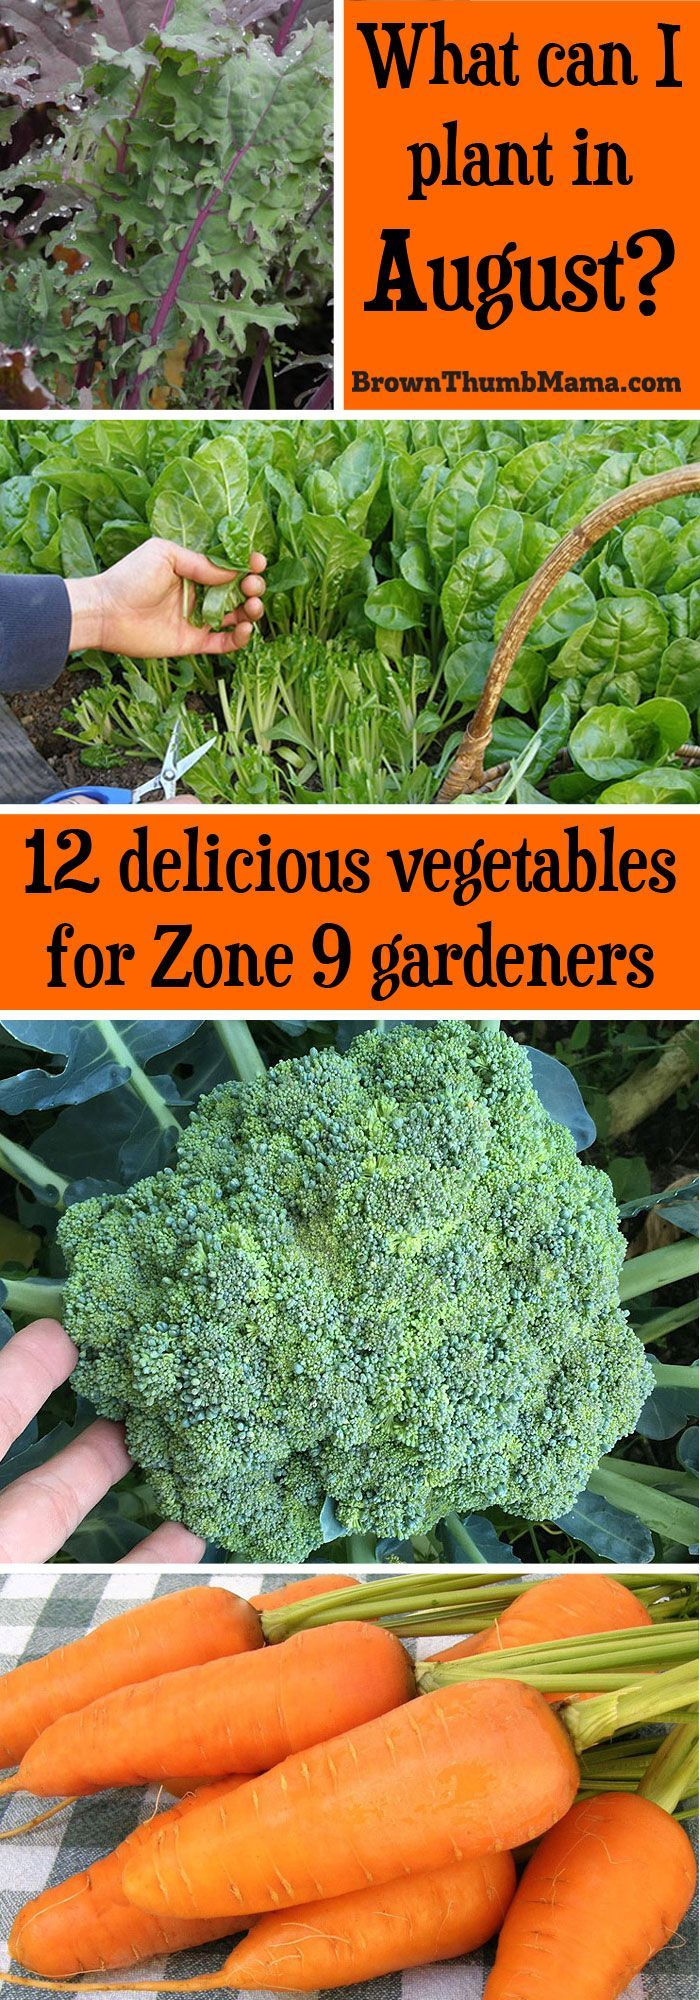 12 Vegetables To Plant In August Zone 9 Organic 400 x 300